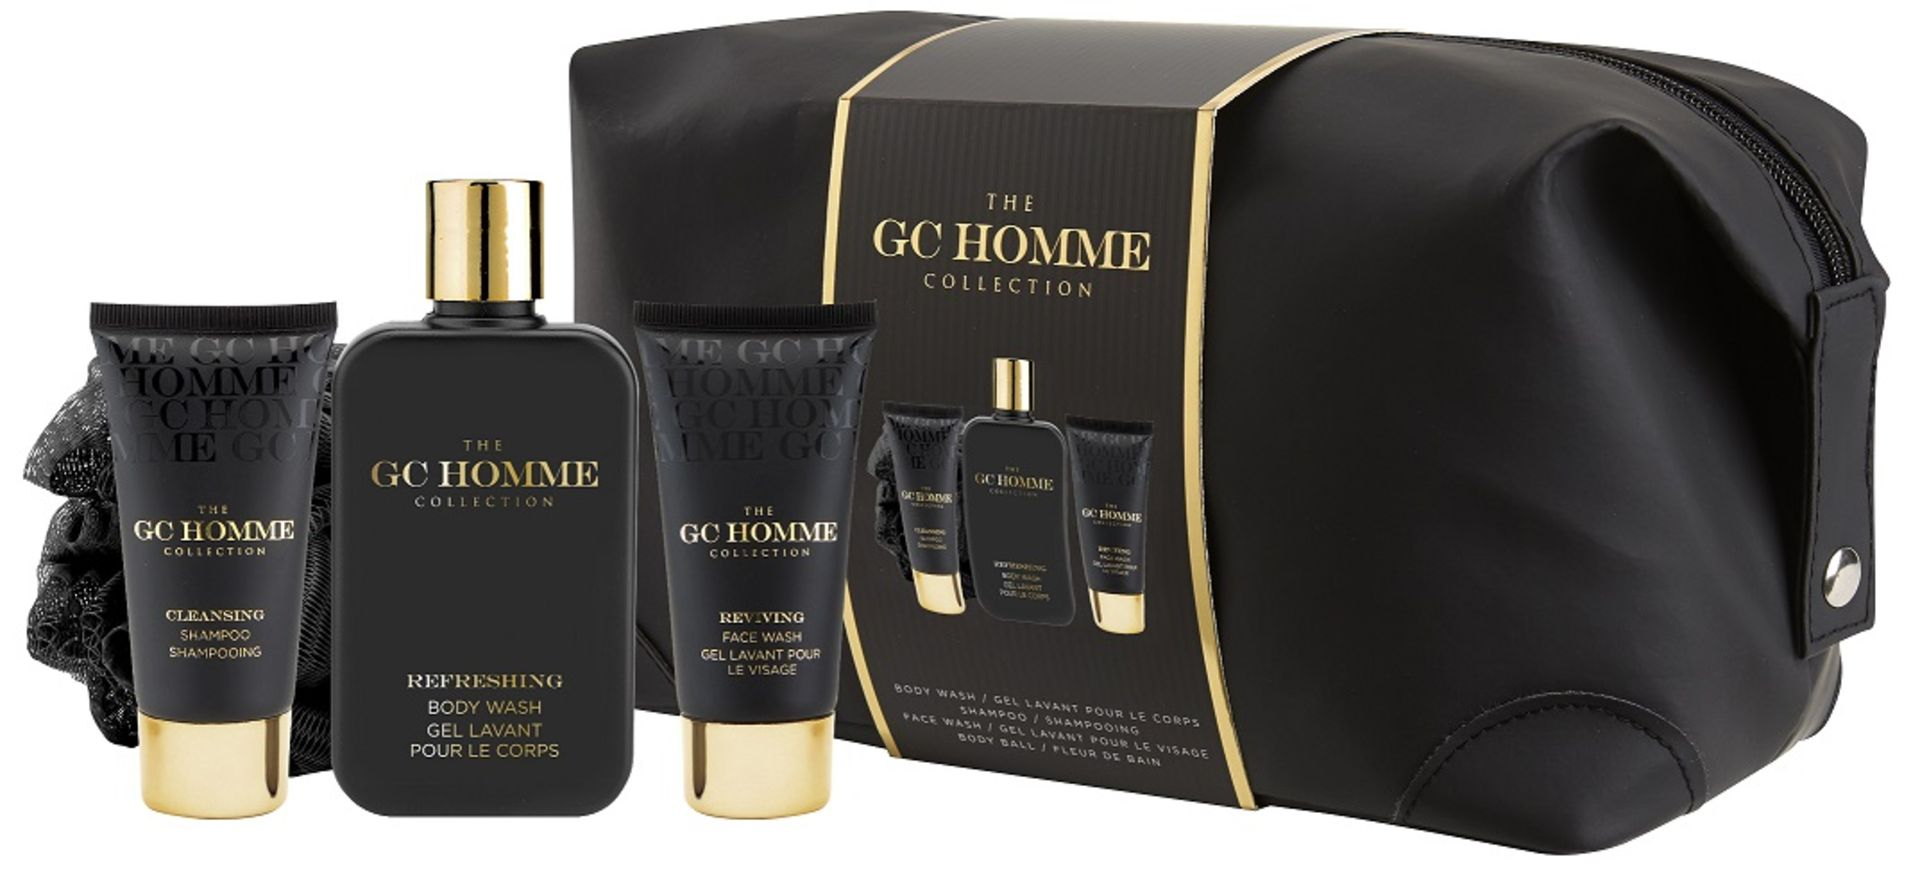 Lot 51553 - V Brand New Grace Cole Captivate GC Homme Collection Toiletry Bag Containing Body Wash - Shampoo -